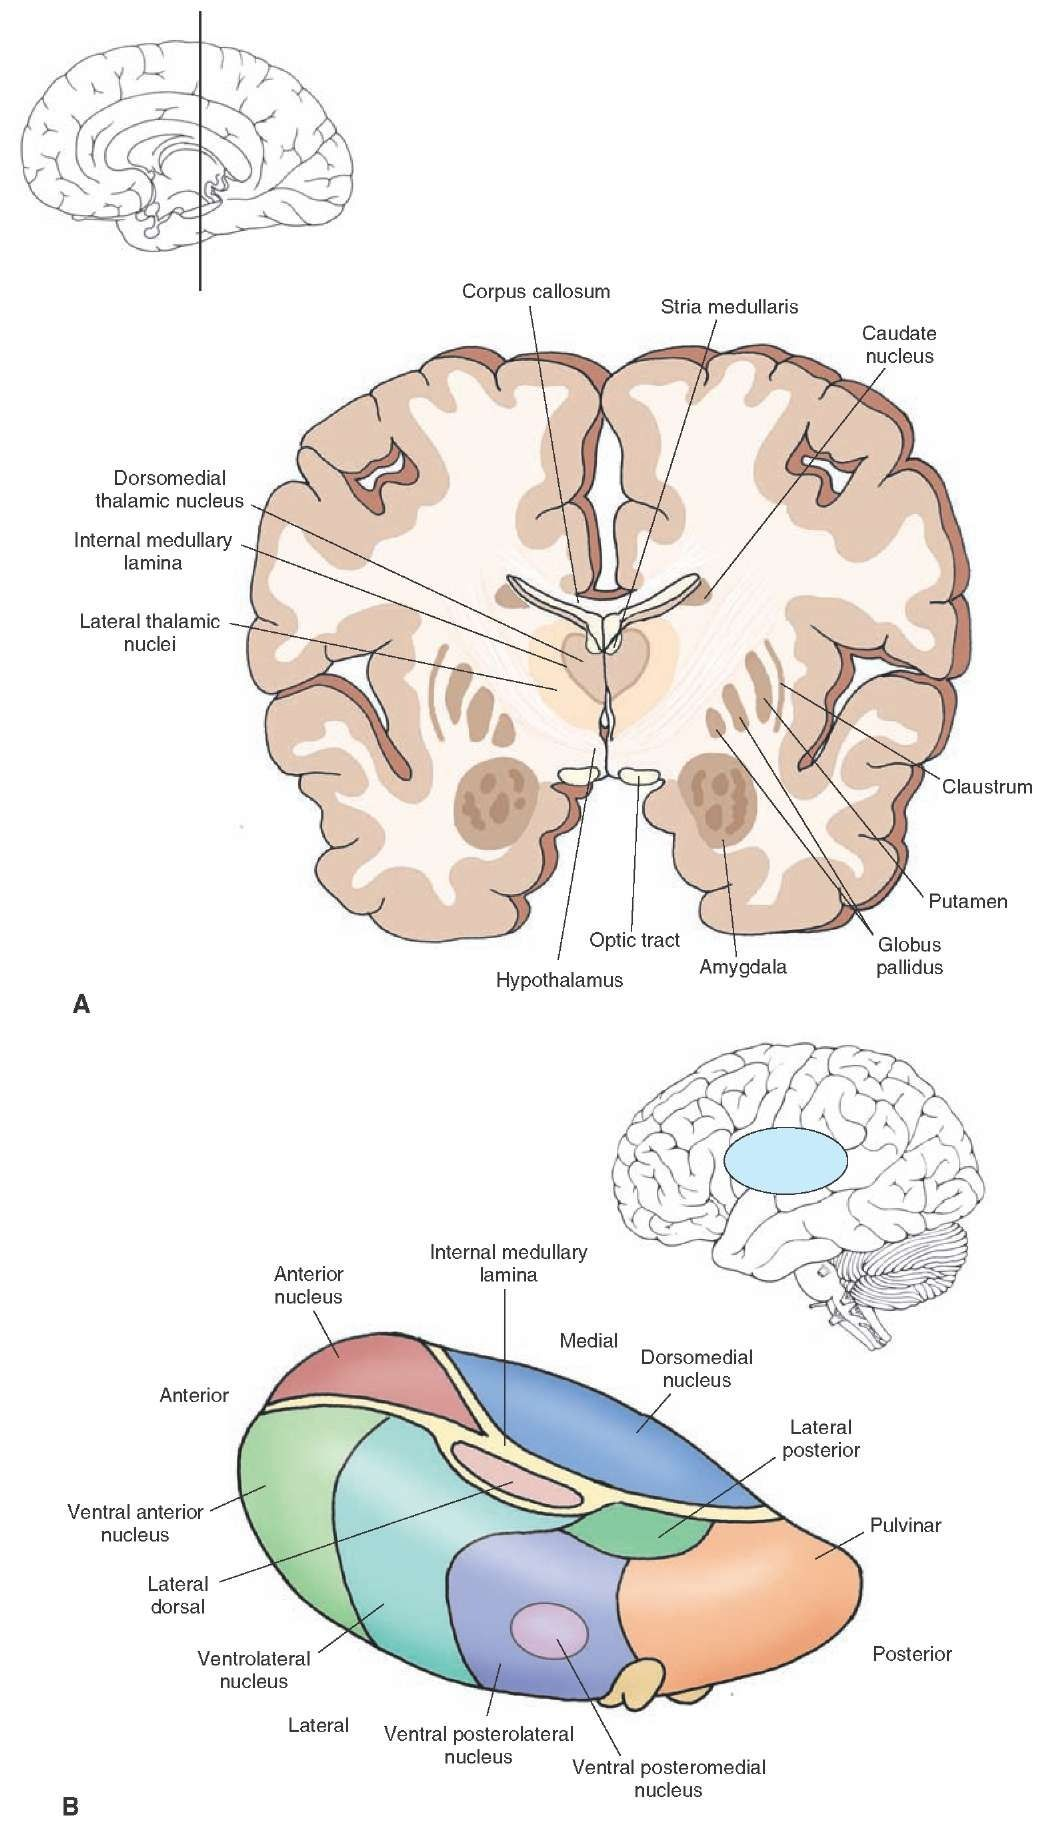 Thalamus Brain Diagram Labeled With D - Block And Schematic Diagrams •